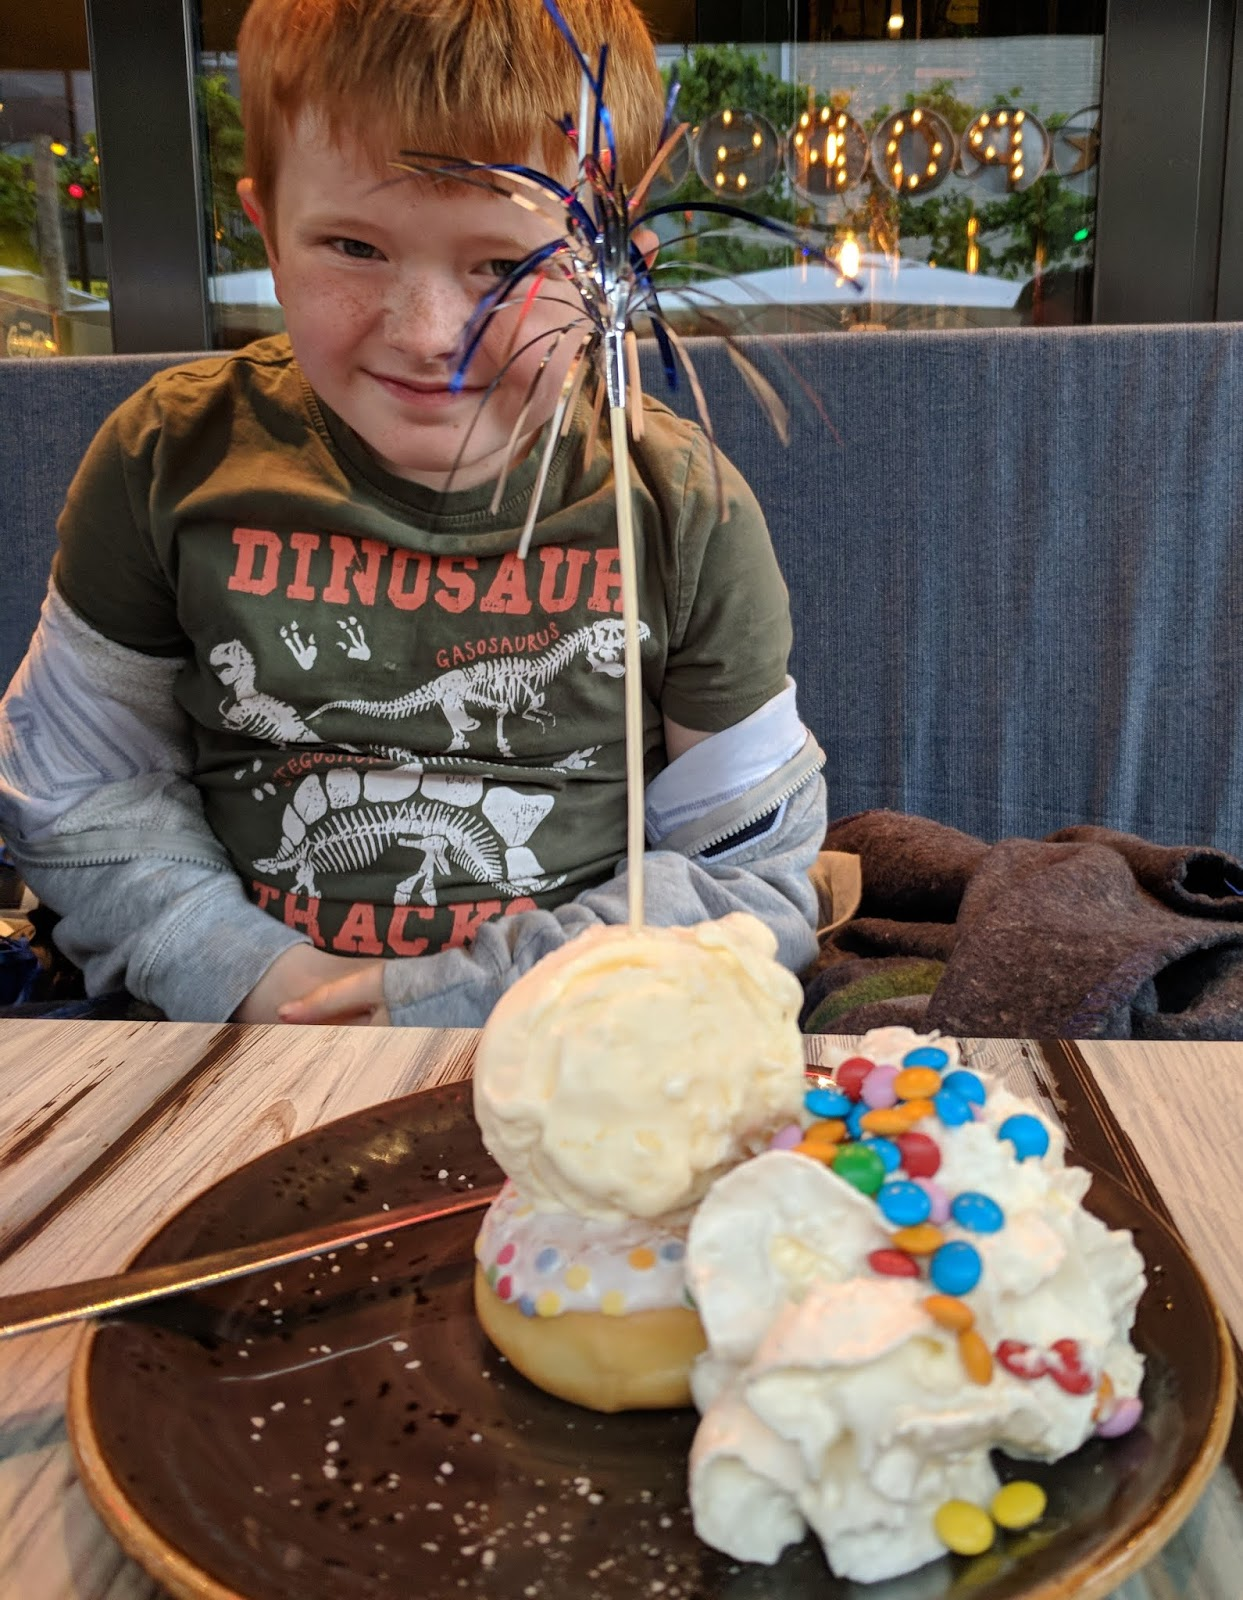 Kids dessert from Pops American Diner in Wassenaar